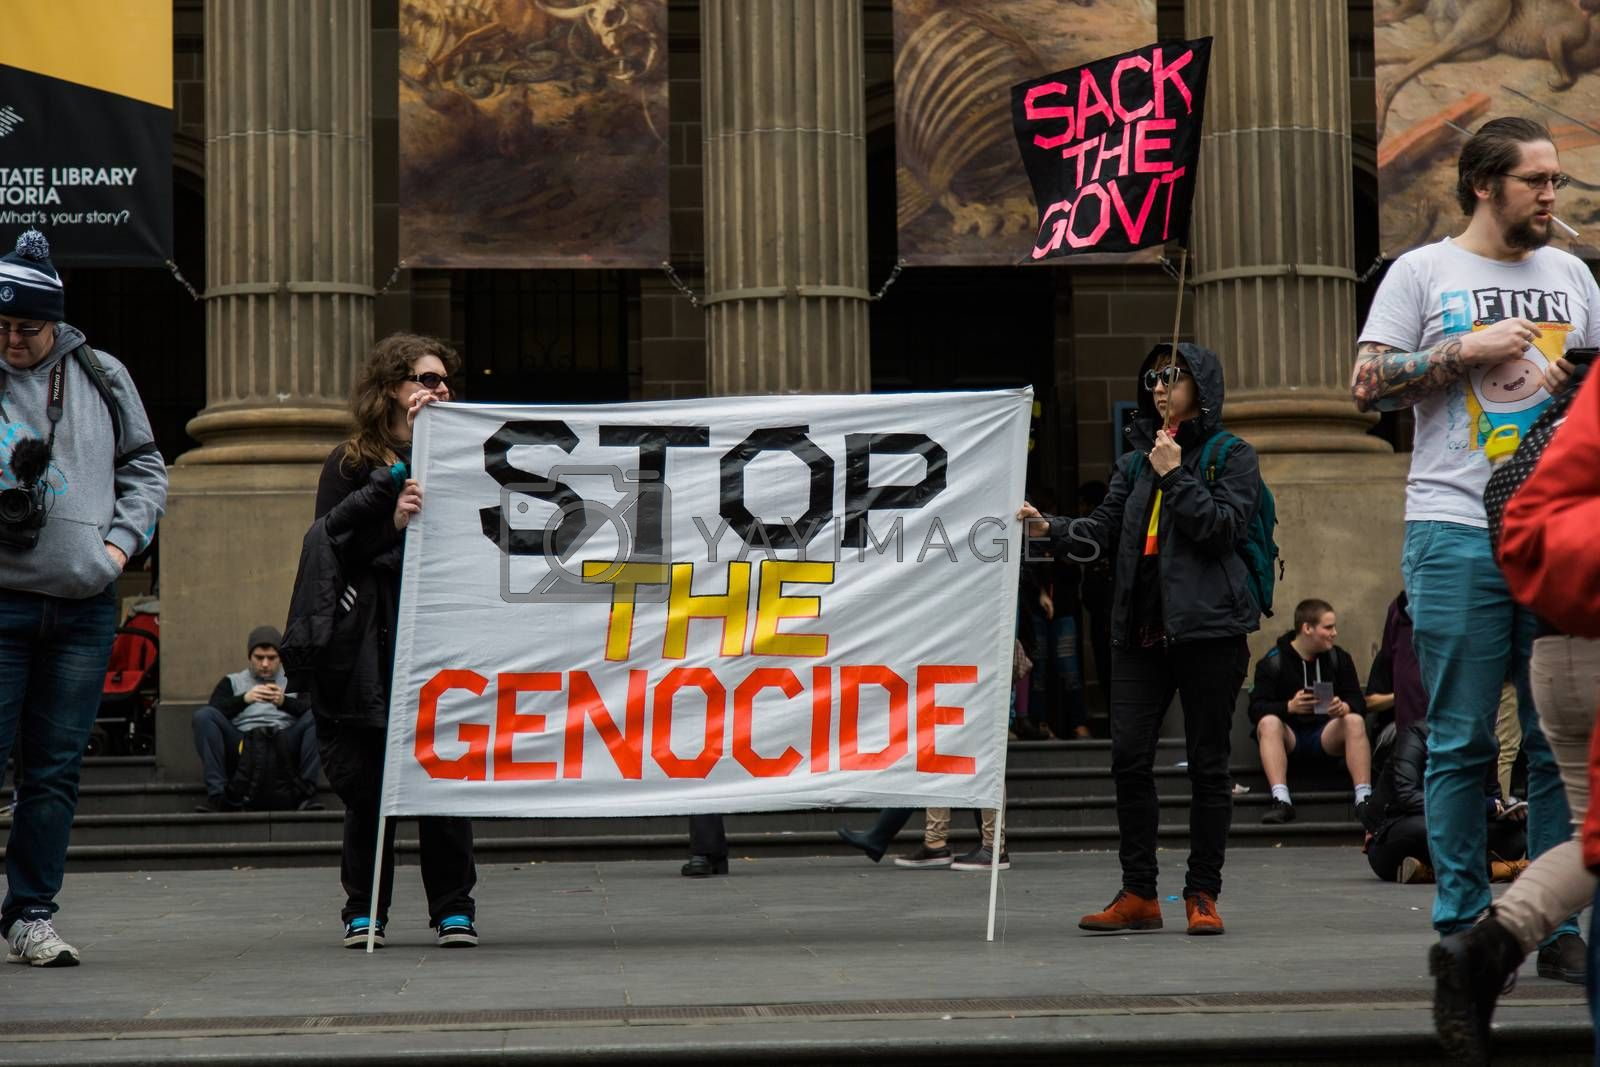 Protesters rally against the torture and detention of indigenous children in the Northern Territory. The rally was held outside the State Library.